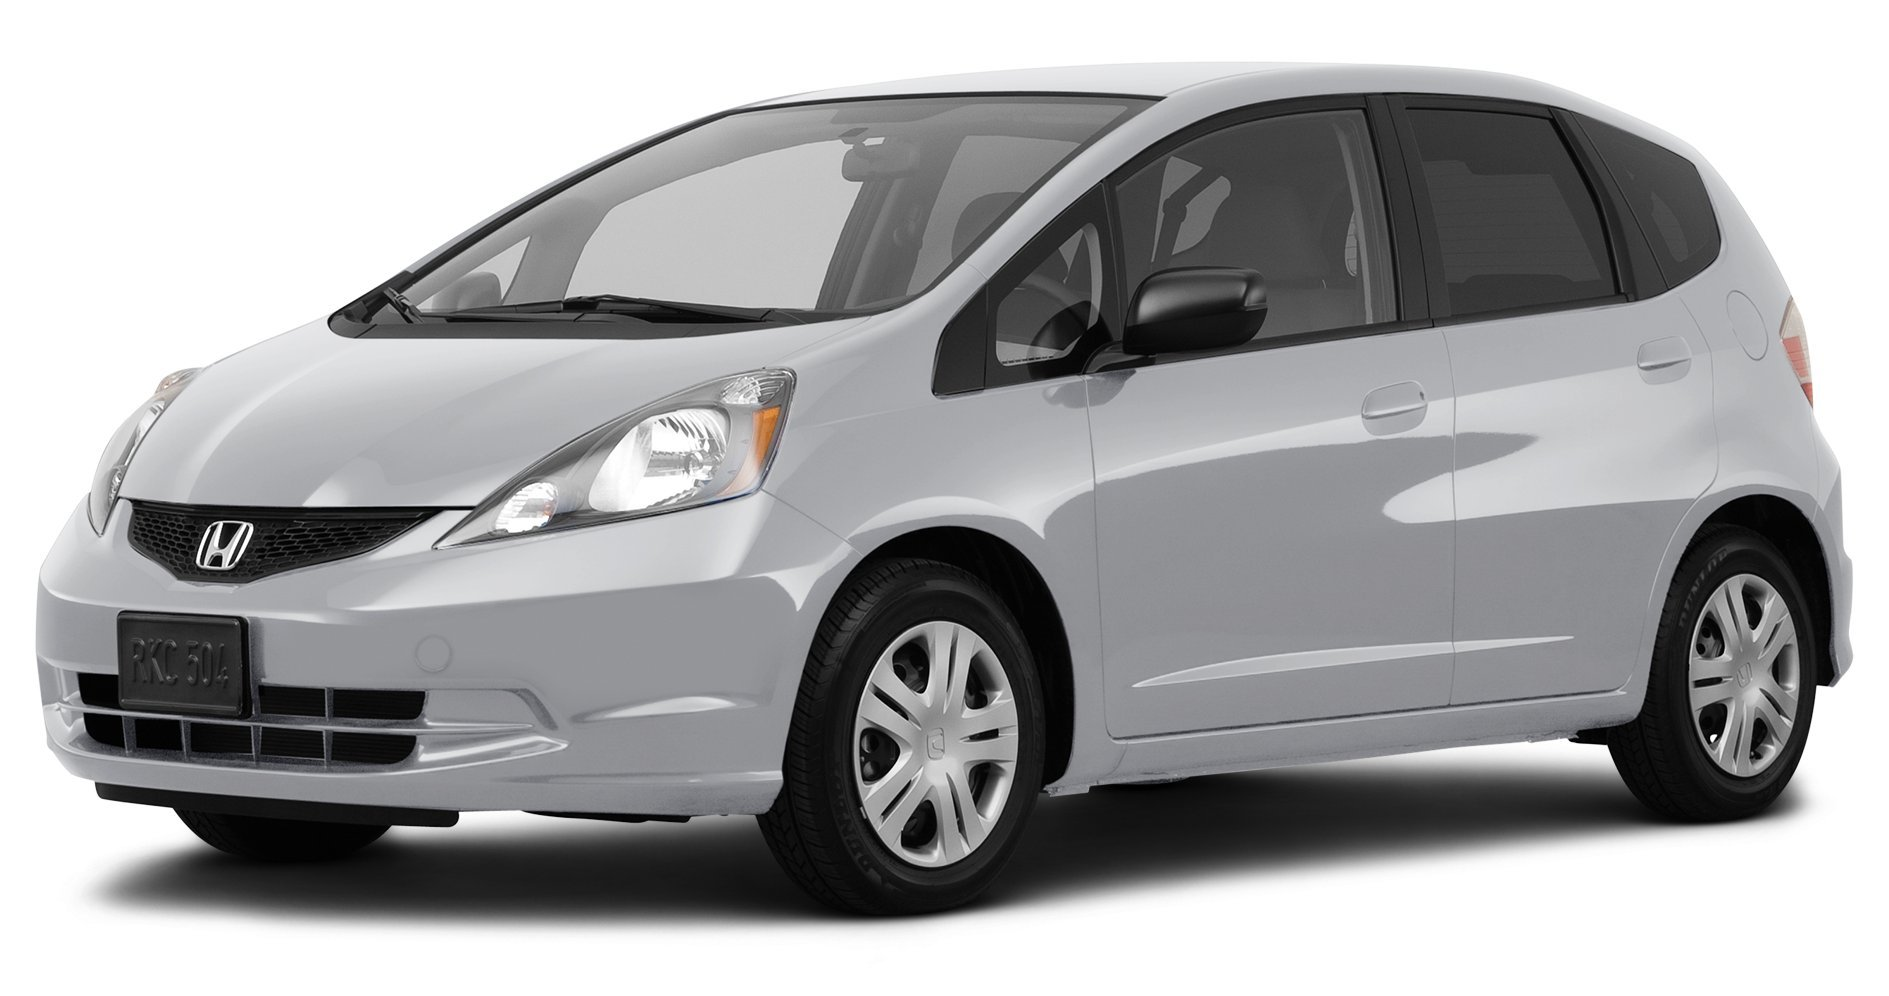 2011 Honda Fit, 5-Door Hatchback Automatic Transmission ...